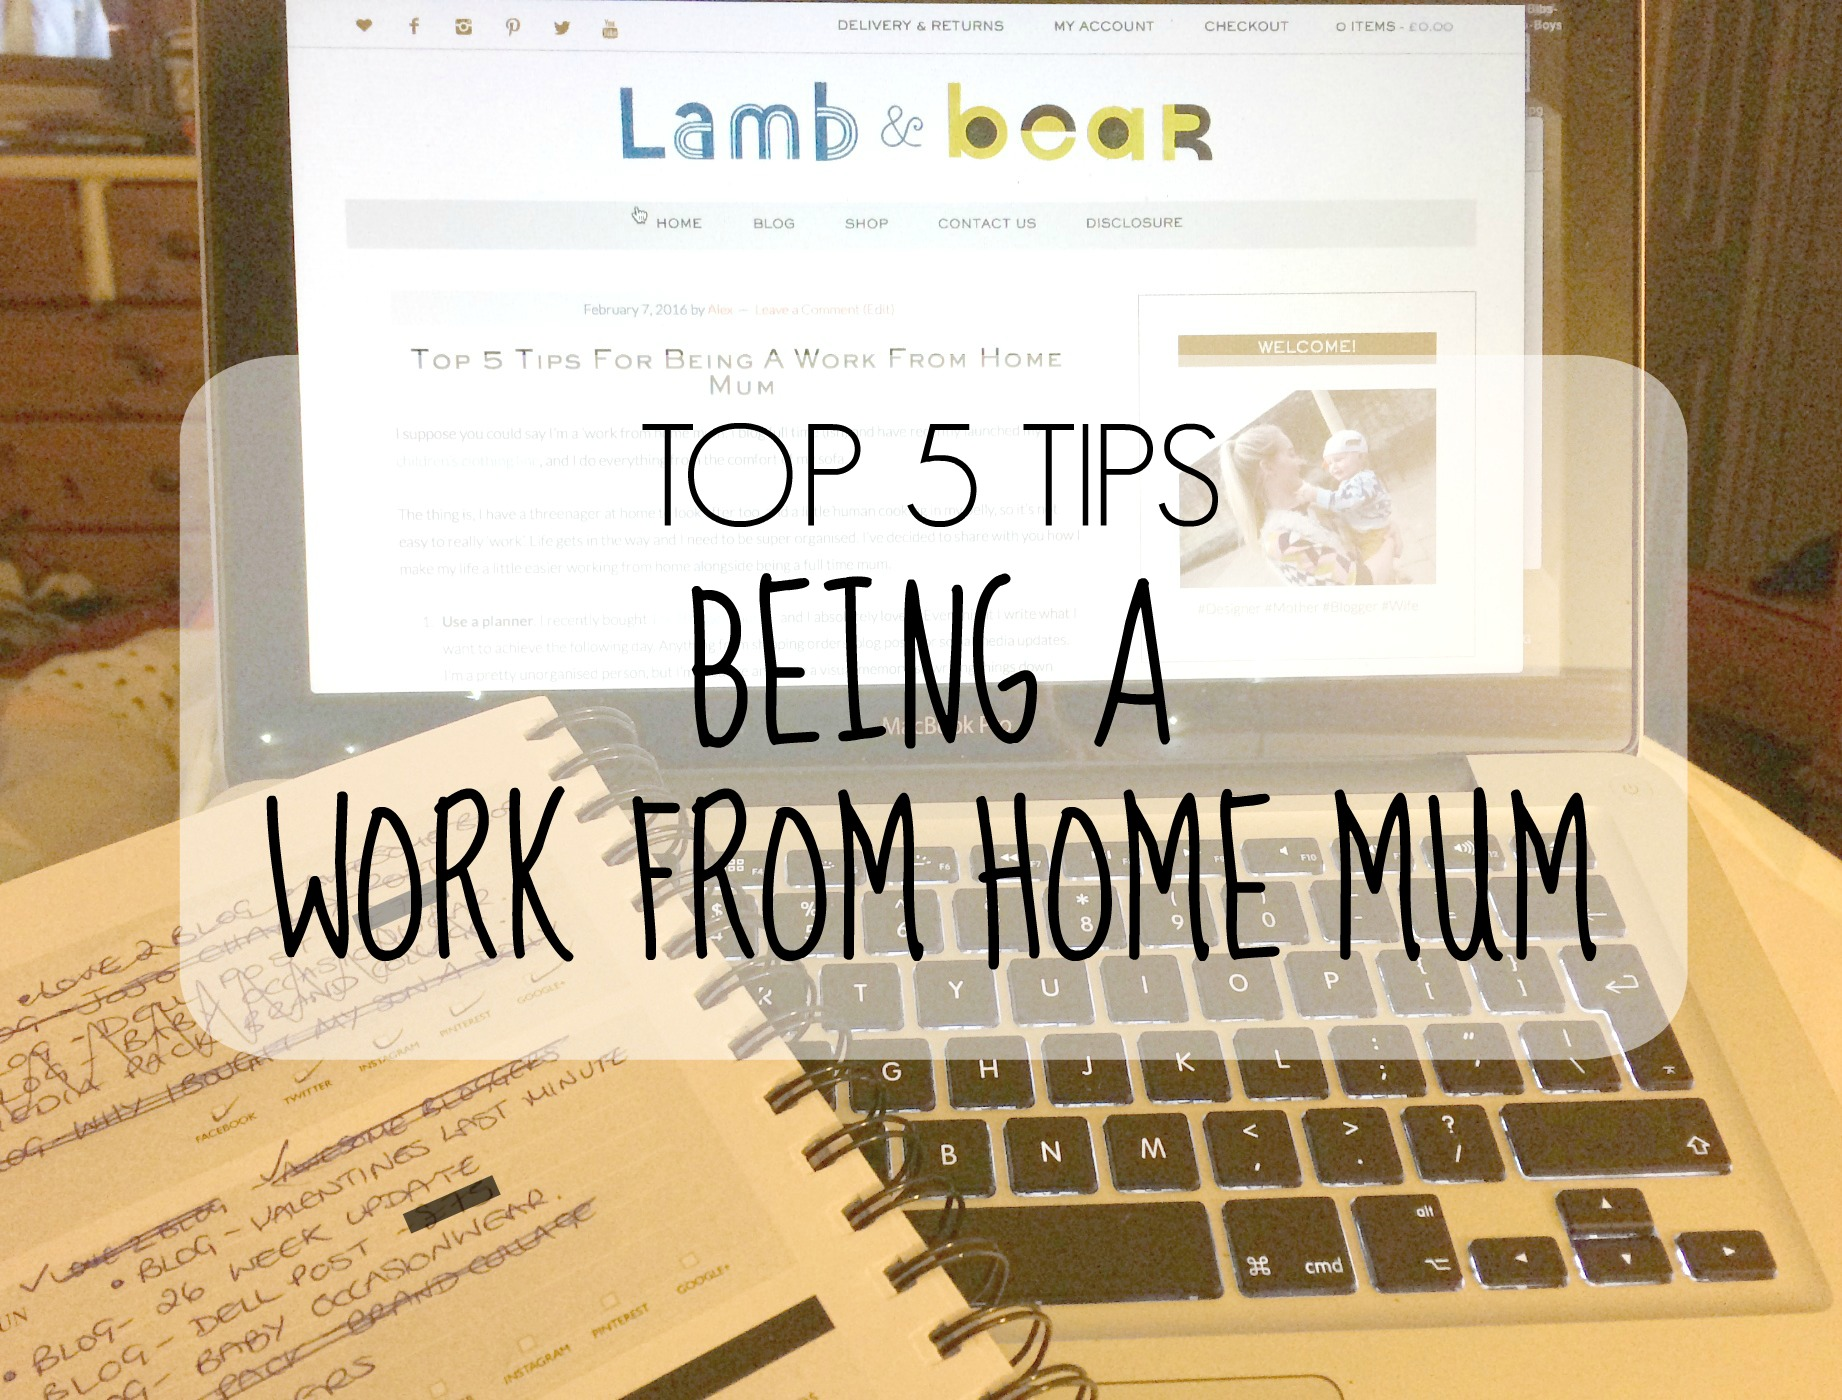 Top 5 Tips For Being A Work From Home Mum